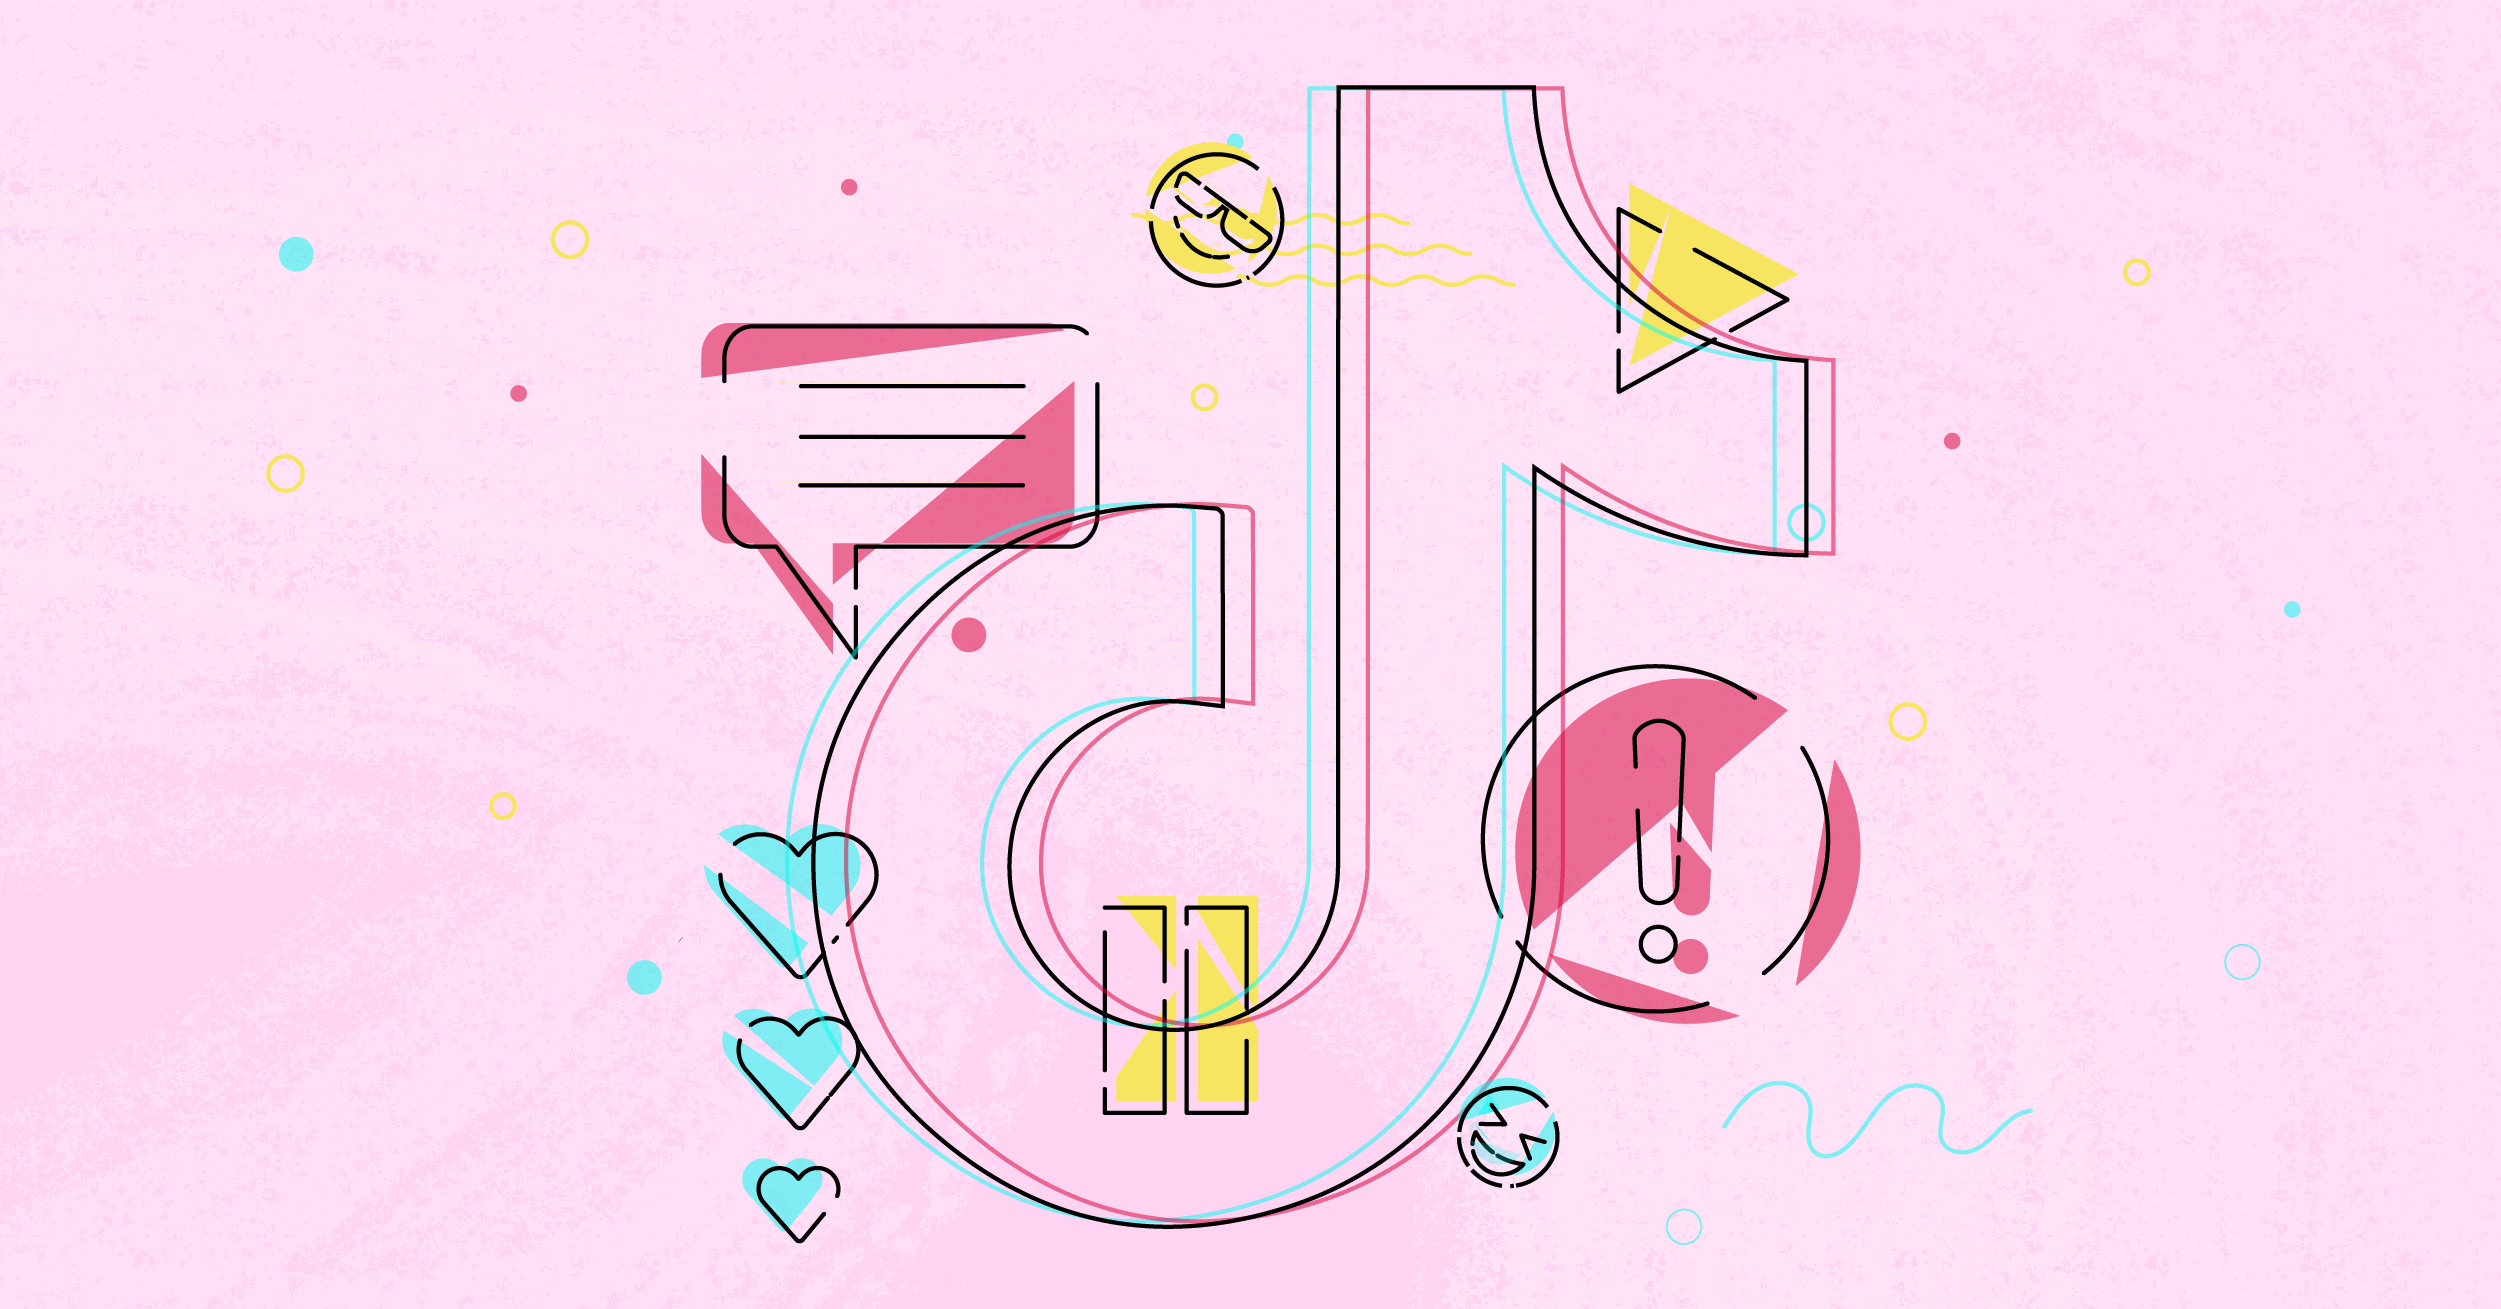 The TikTok logo on a bubblegum pink background